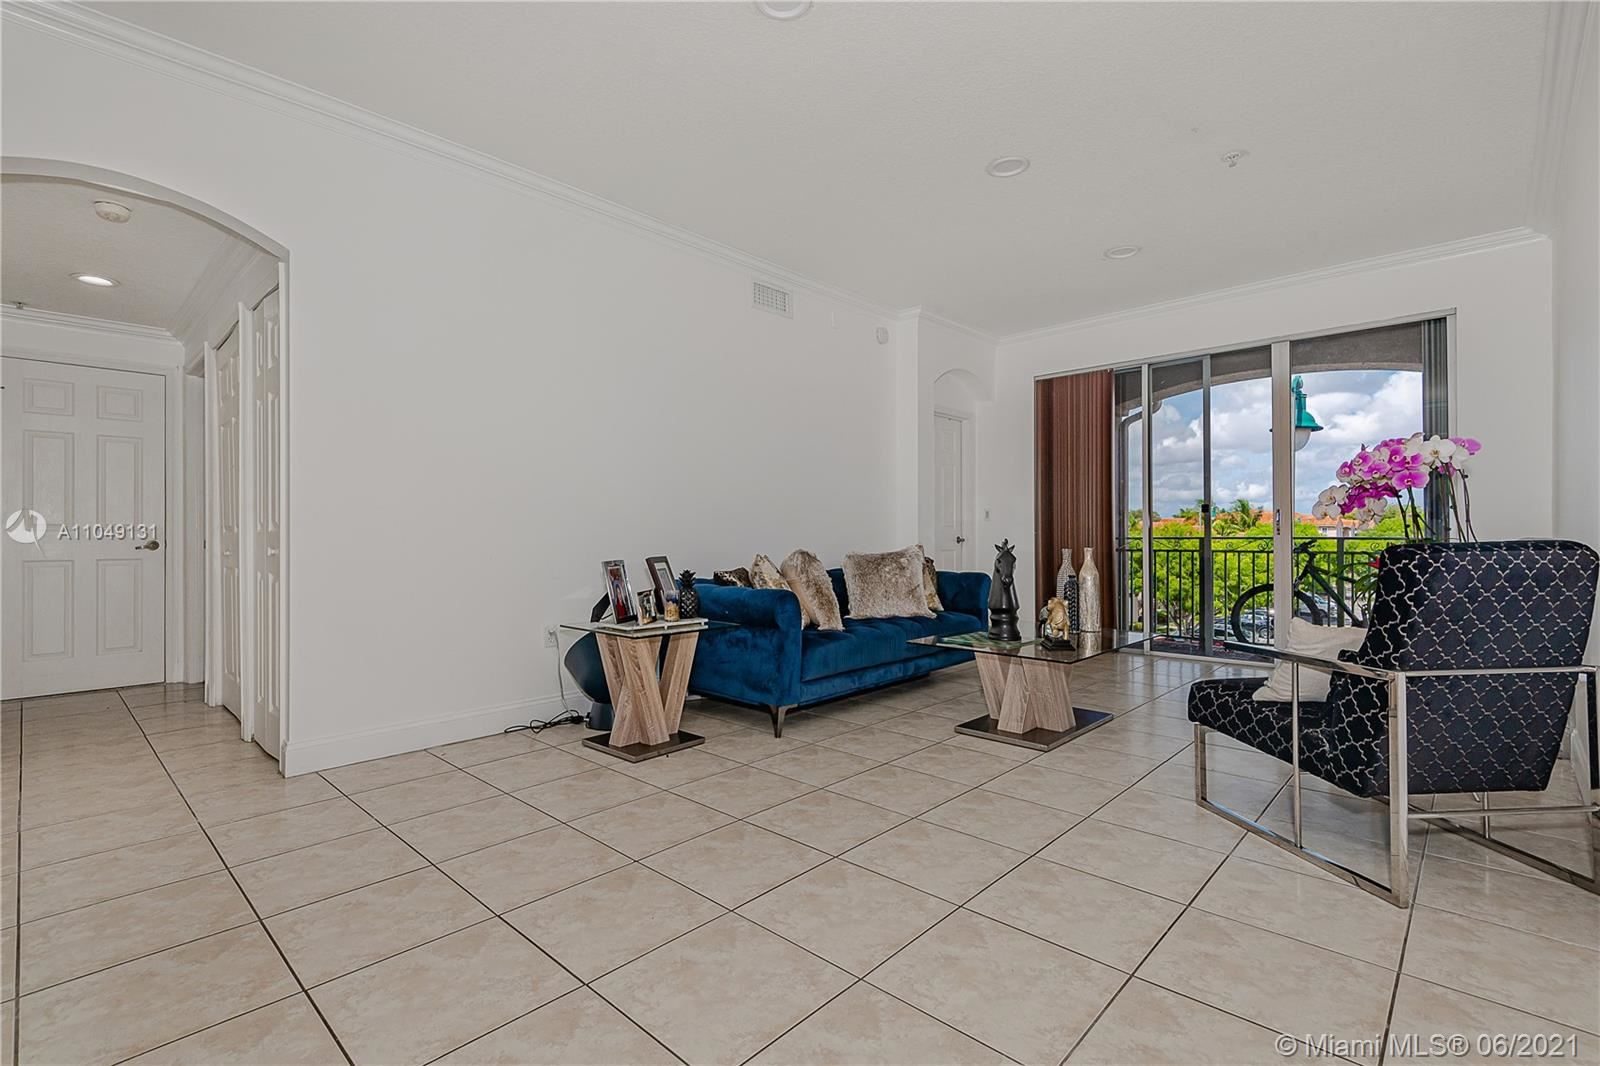 6670 NW 114th Ave #634, Doral, FL 33178 - #: A11049131